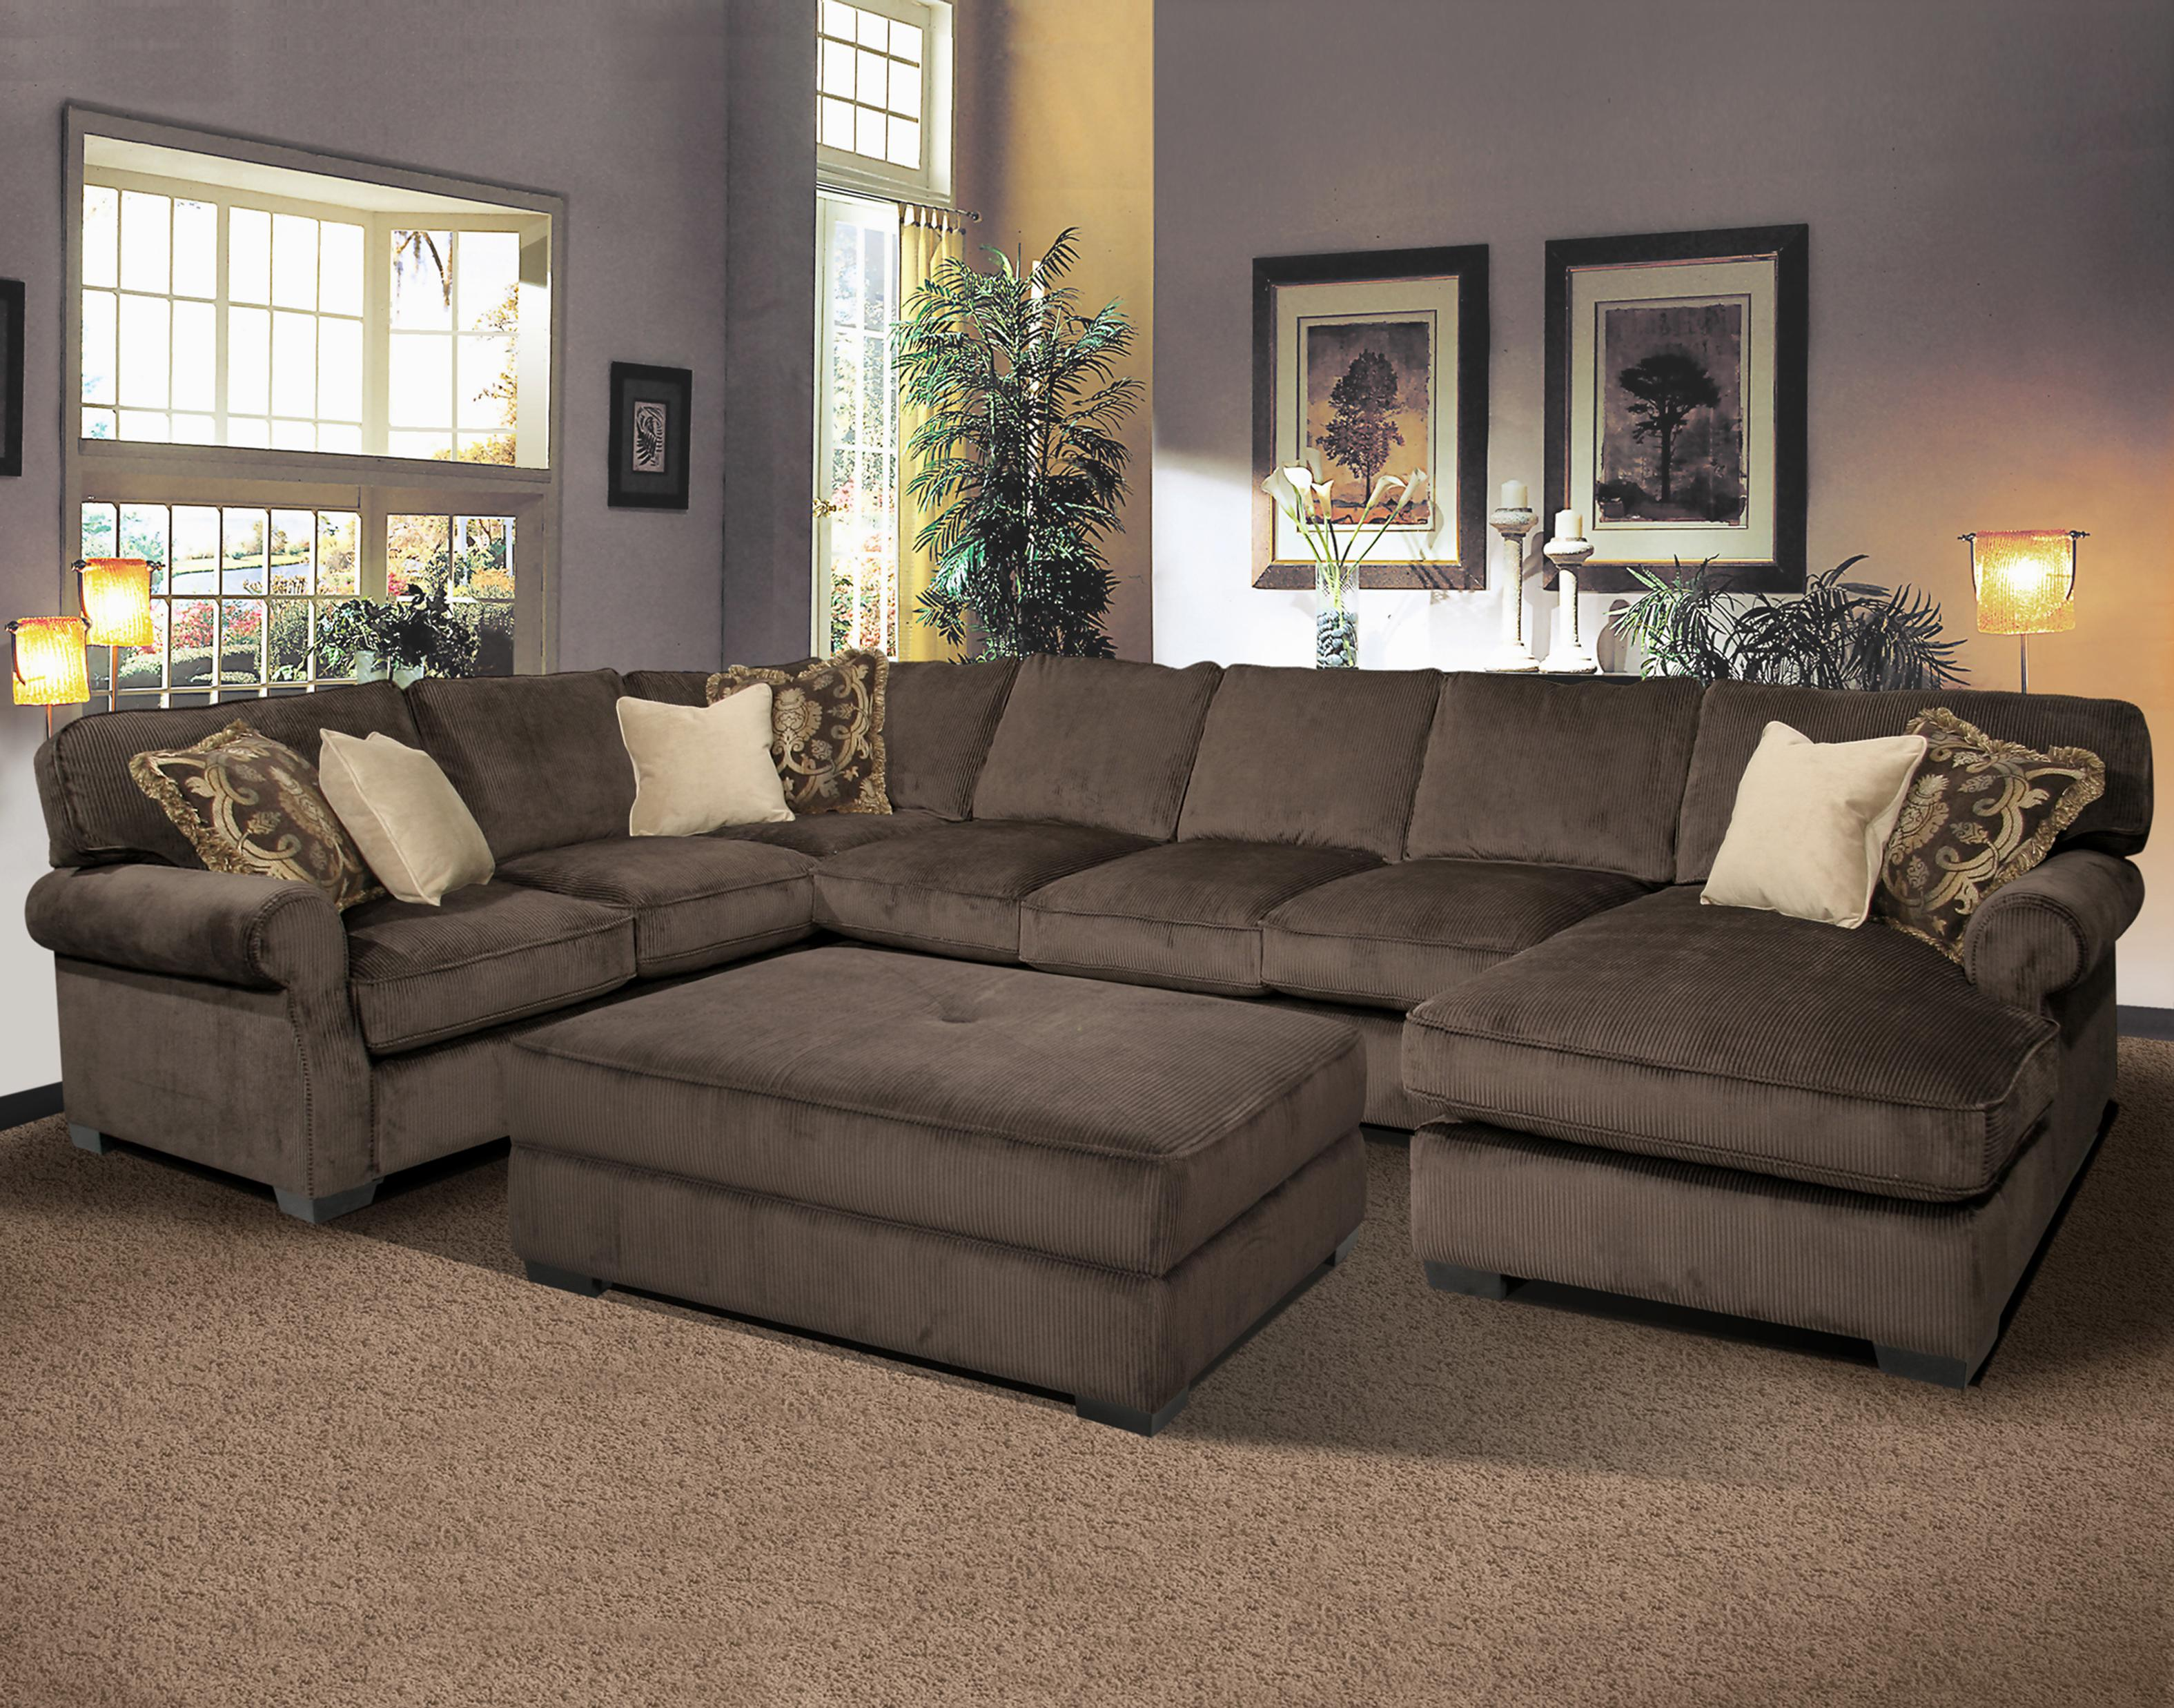 Unique Extra Large Sectional Sofas 69 For Contemporary Sofa Inspiration  With Extra Large Sectional Sofas